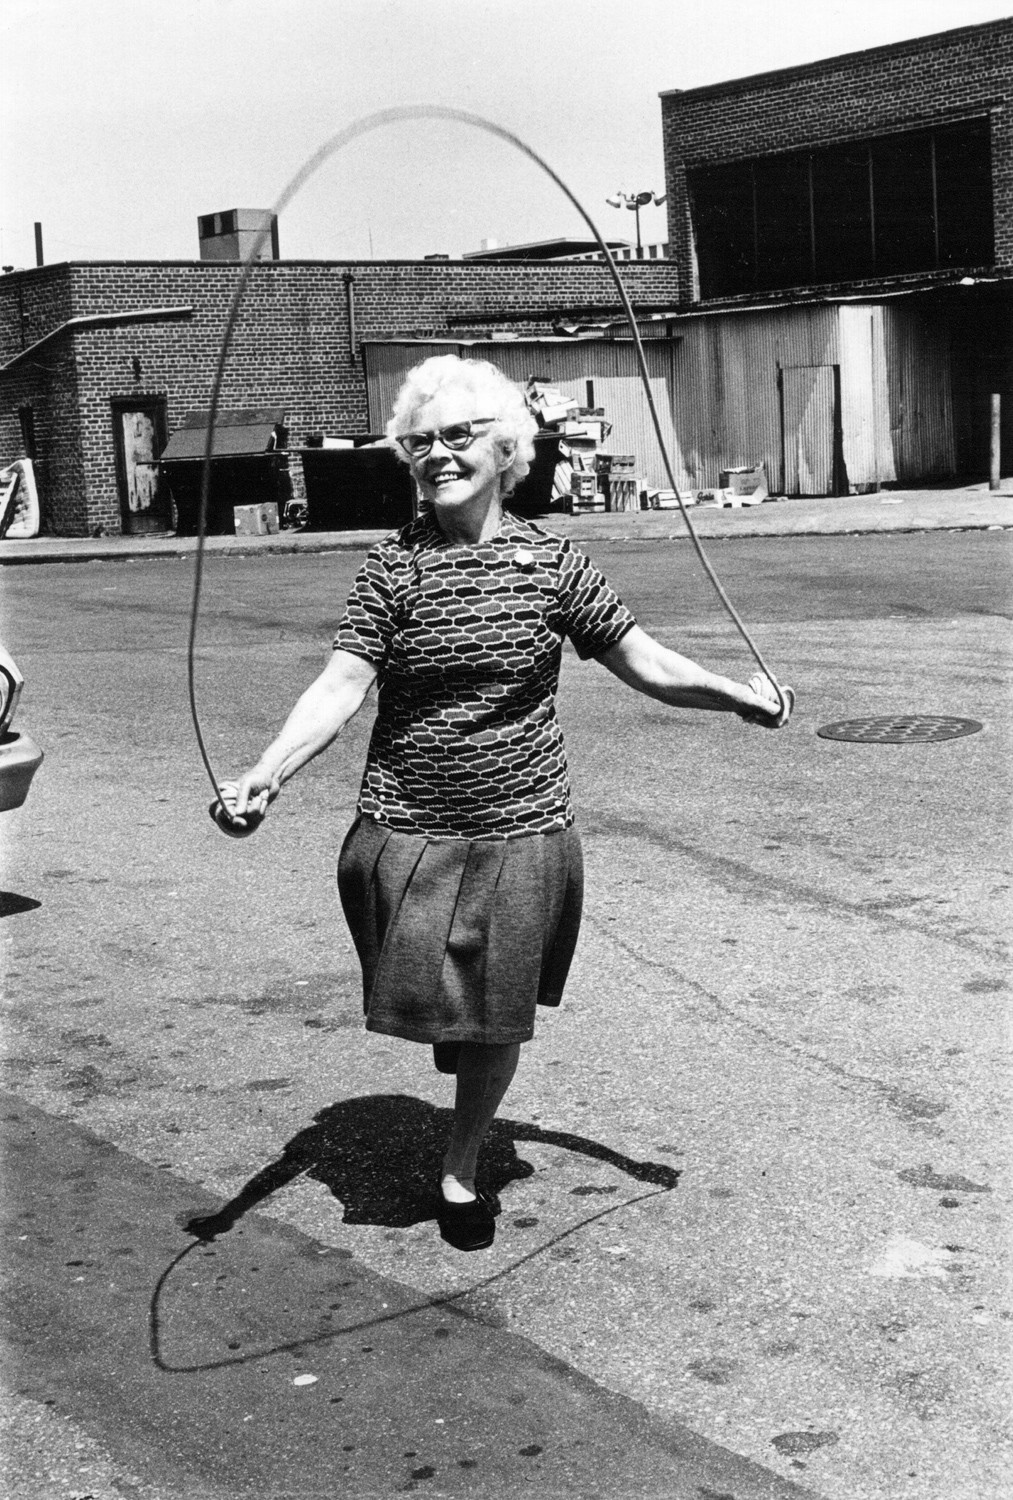 Many of Arlene Gottfried's images are full of humor, like 'Isabel Croft Jumping Rope' from 1972.